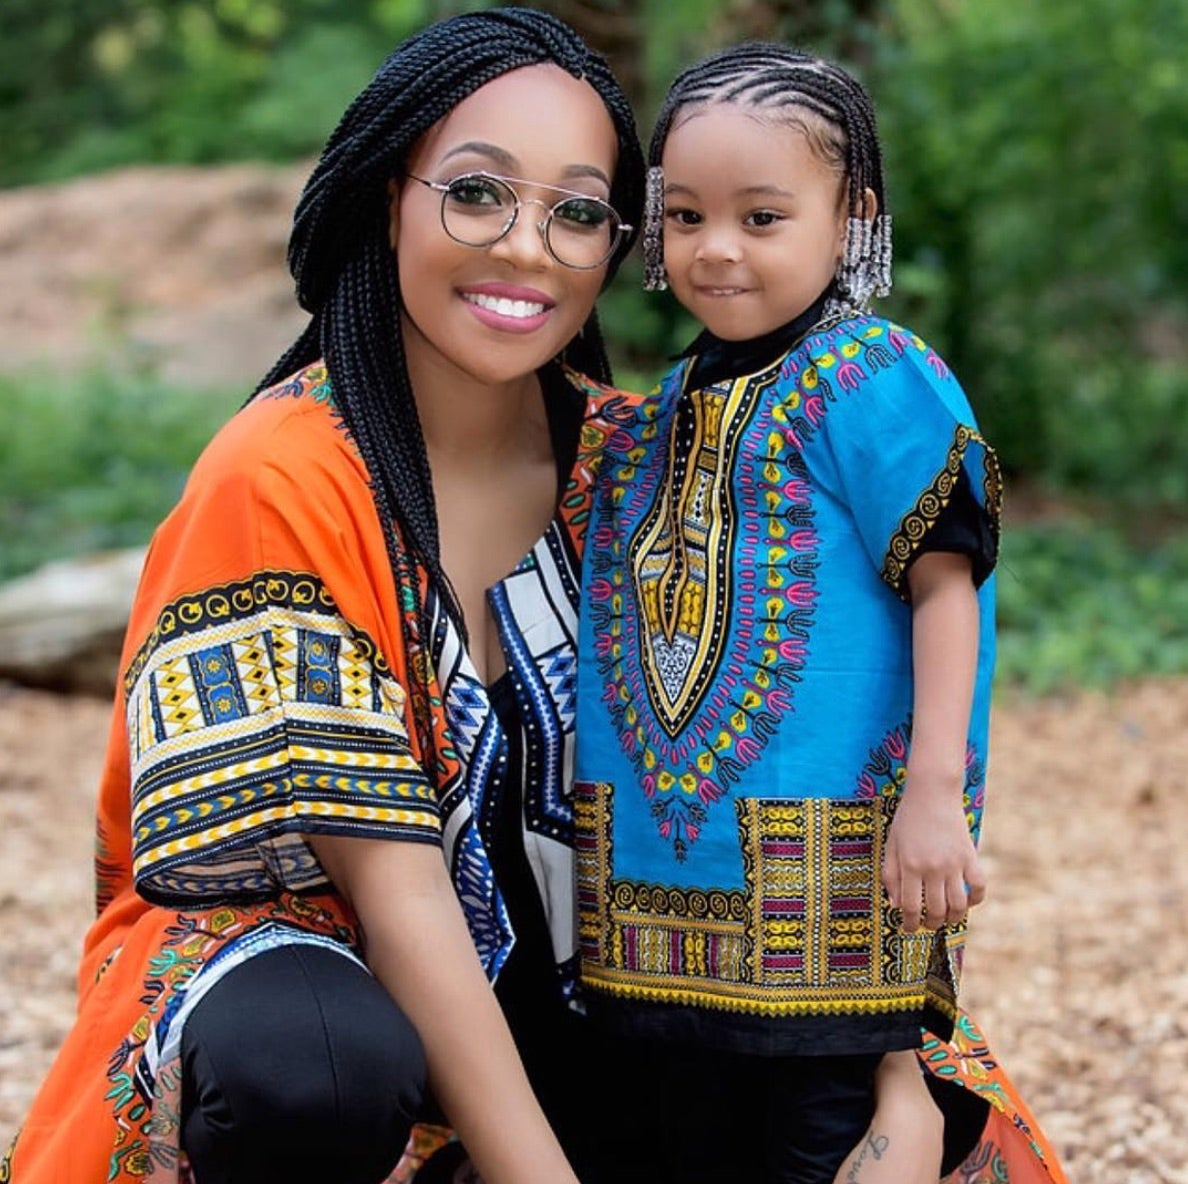 Monica and Daughter Share Braided Hair Moment